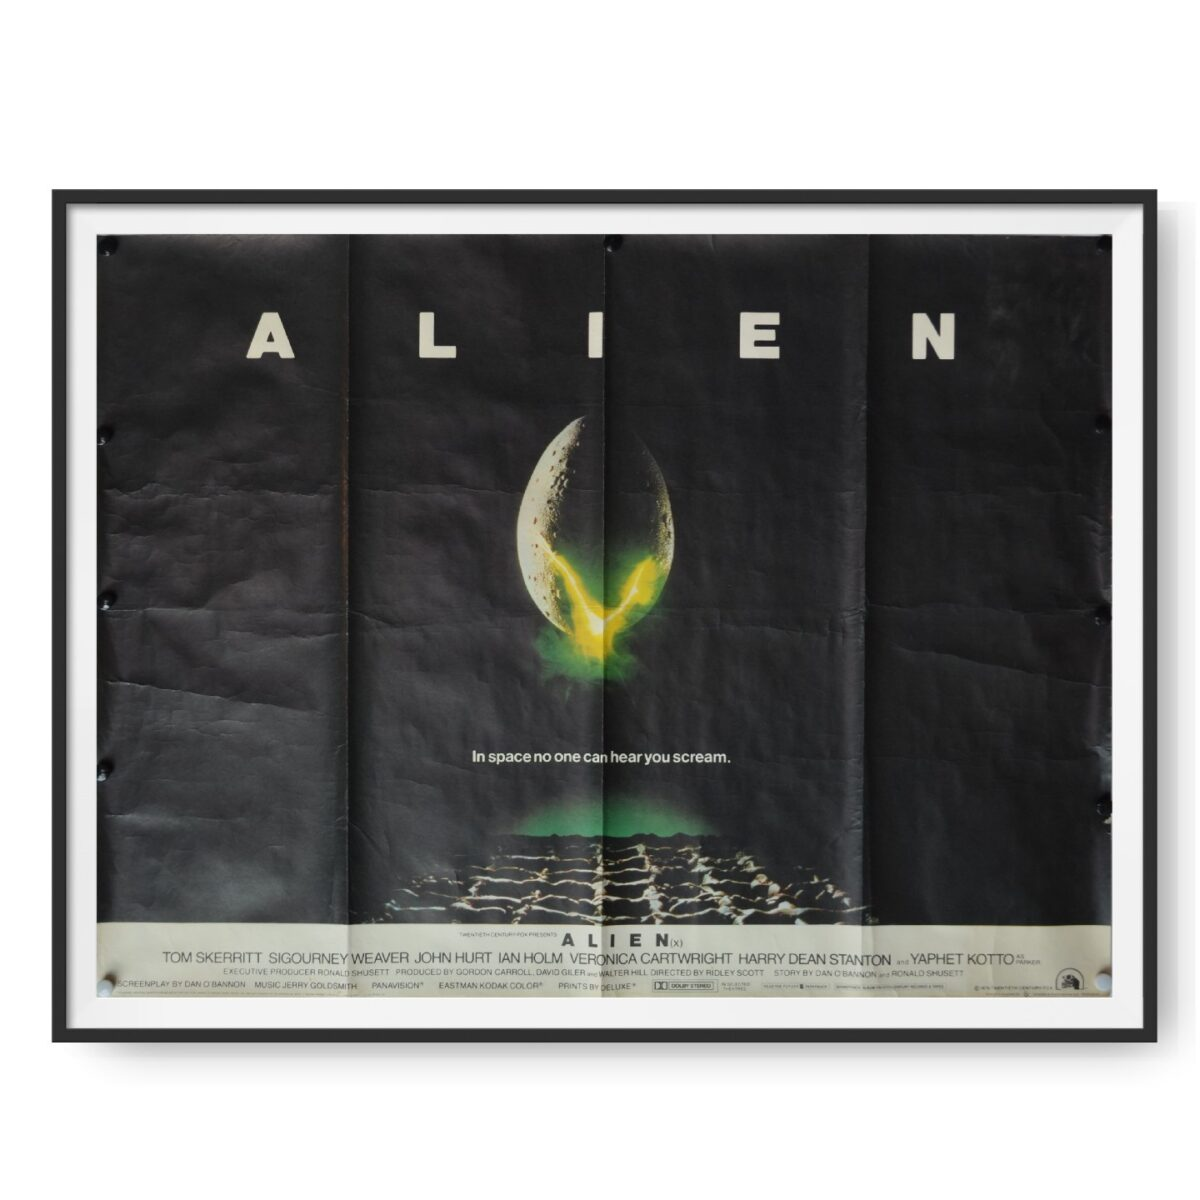 Movie poster for the film Alien shows famous image of cracking egg.